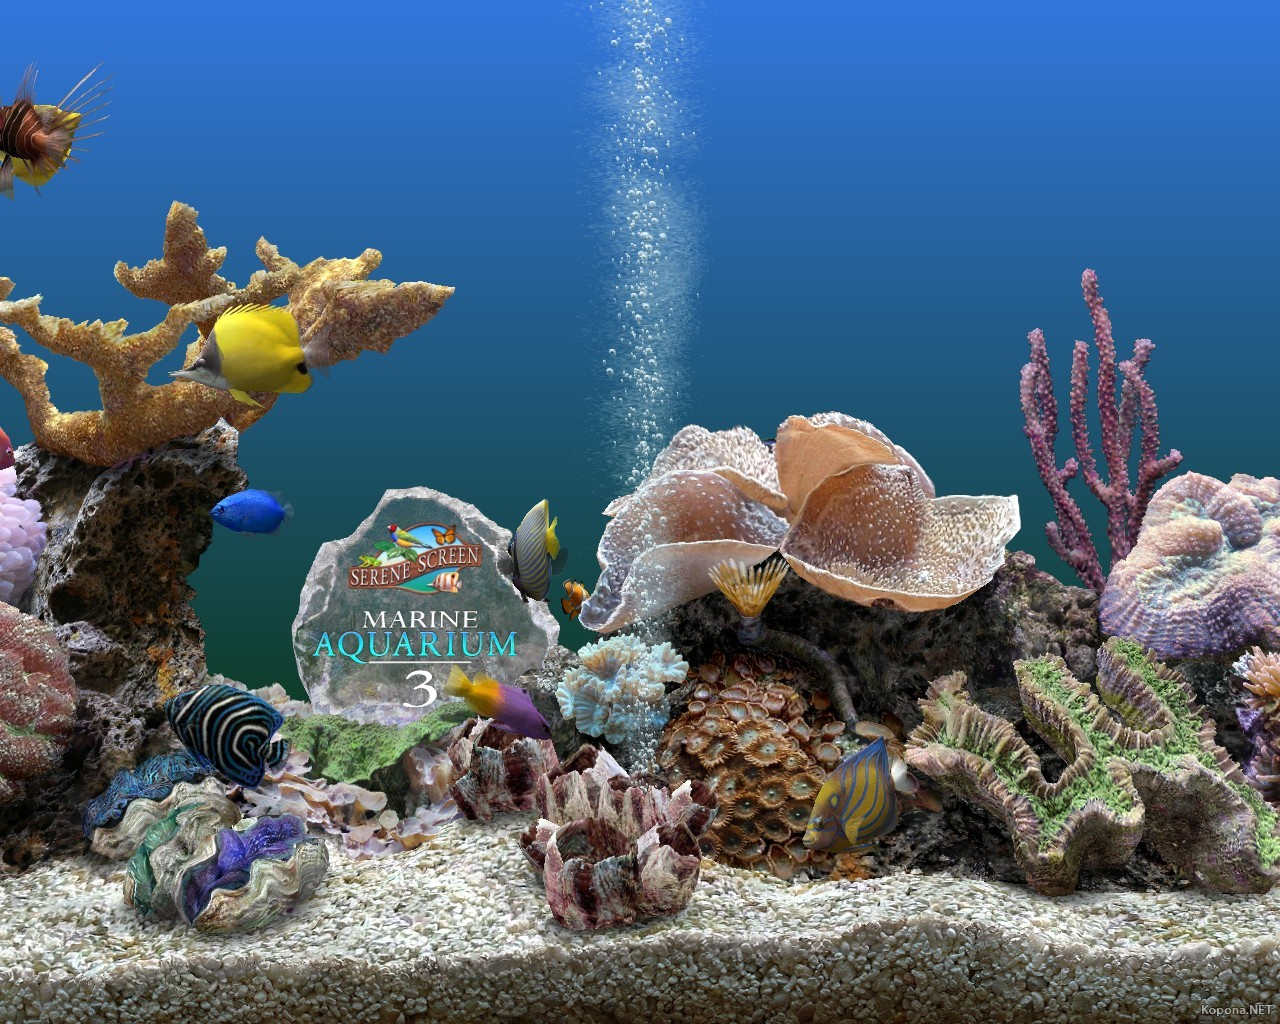 Marine Aquarium : Marine Aquarium Services Marine Aquarium Pictures to pin on Pinterest